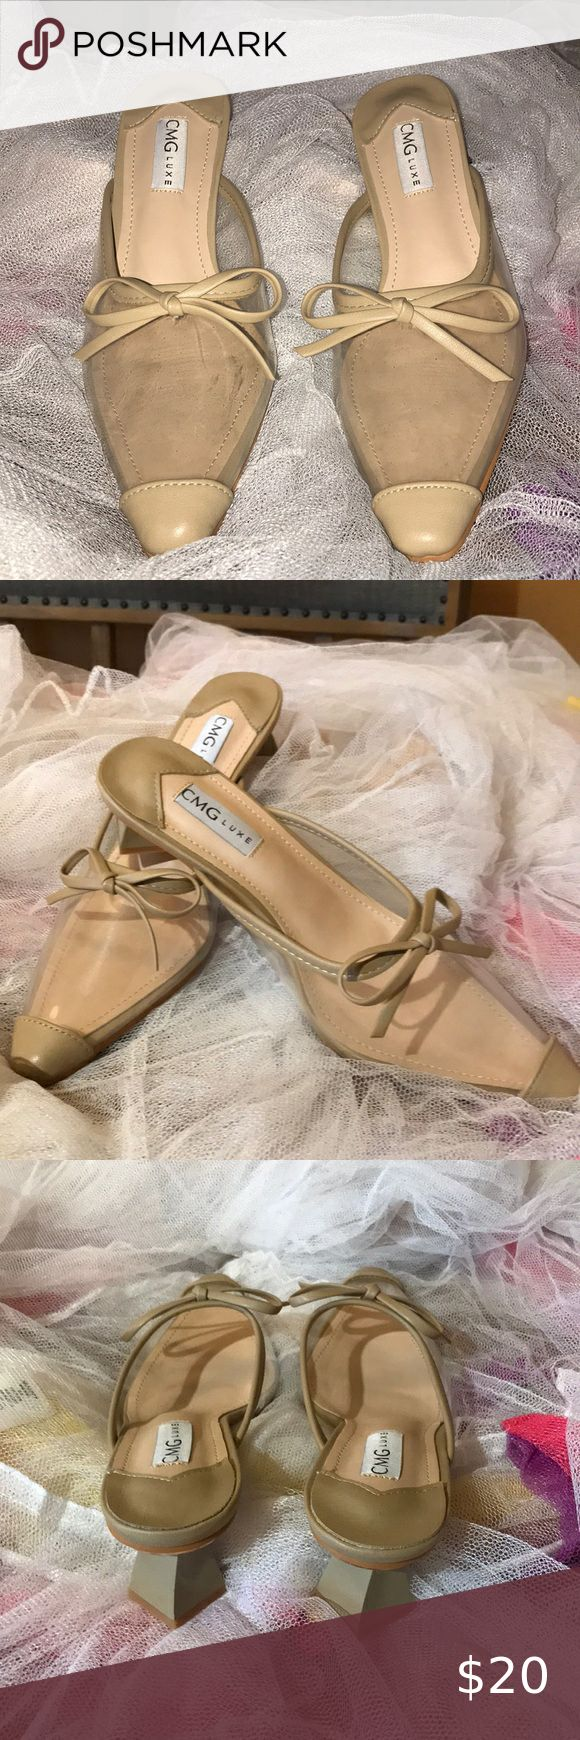 Shoes for sale Boutique in 2020 (With images) Celine